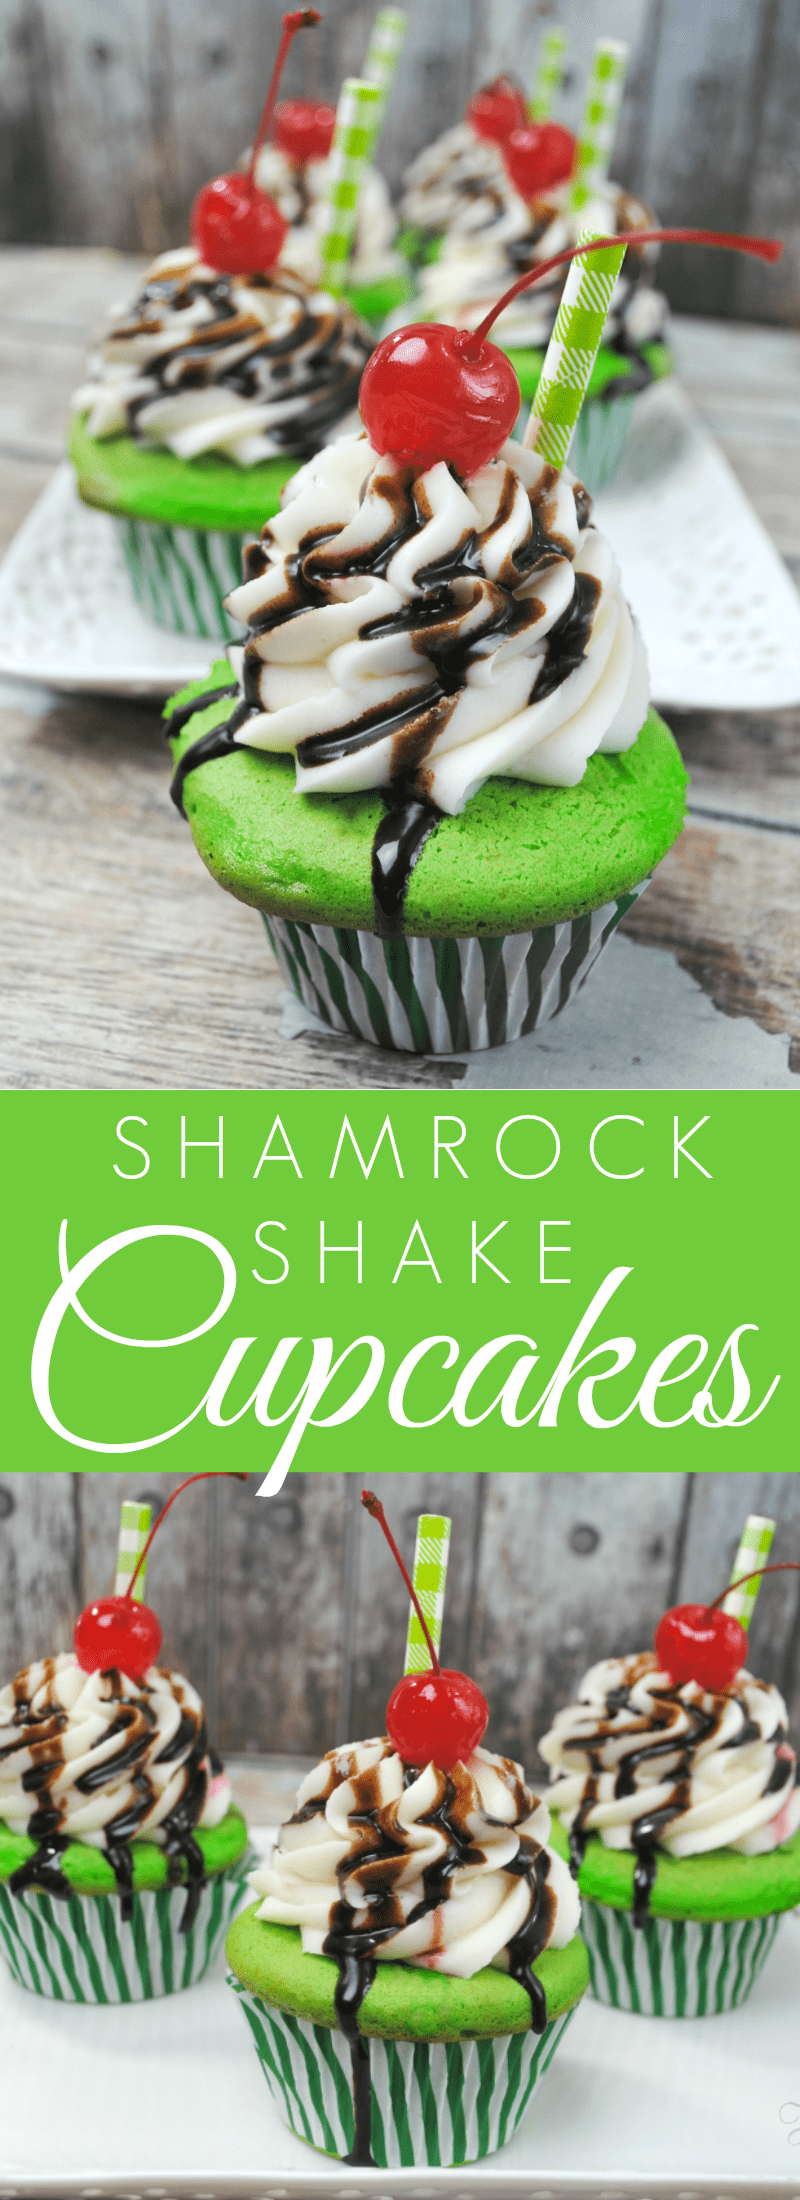 Try this easy Shamrock Shake recipe – the mint extract mixed with vanilla ice cream makes for a super refreshing and very yummy dessert! Easy Mint Shamrock Shake. 2 cups vanilla ice cream 1/2 cup milk 1/2 teaspoon mint extract 1/2 teaspoon vanilla extract.